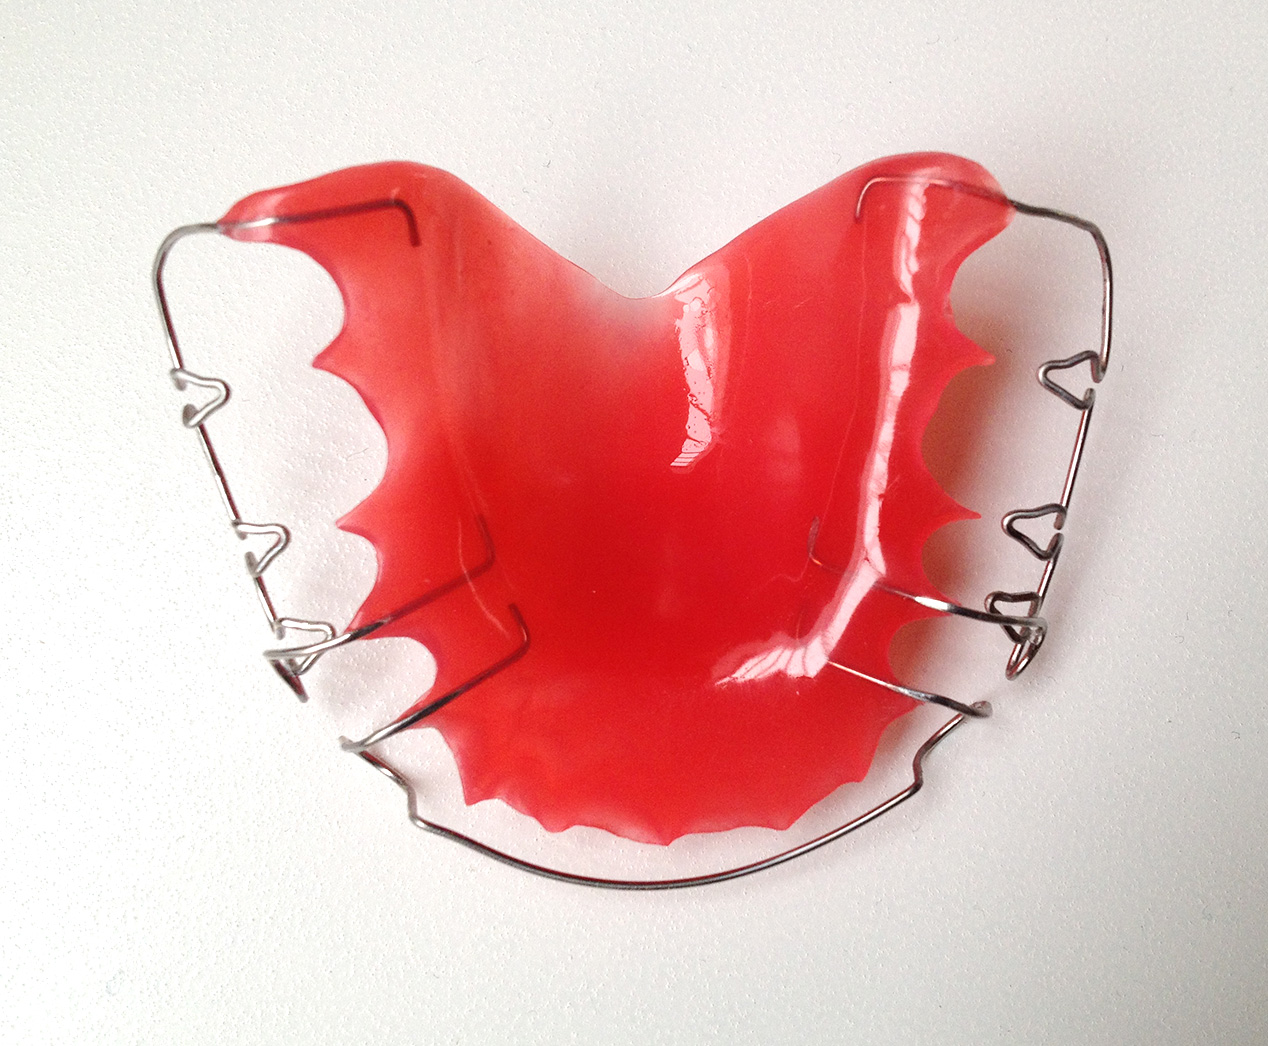 Retainer with Arrow Clamps   Retainers   BracesShop.net